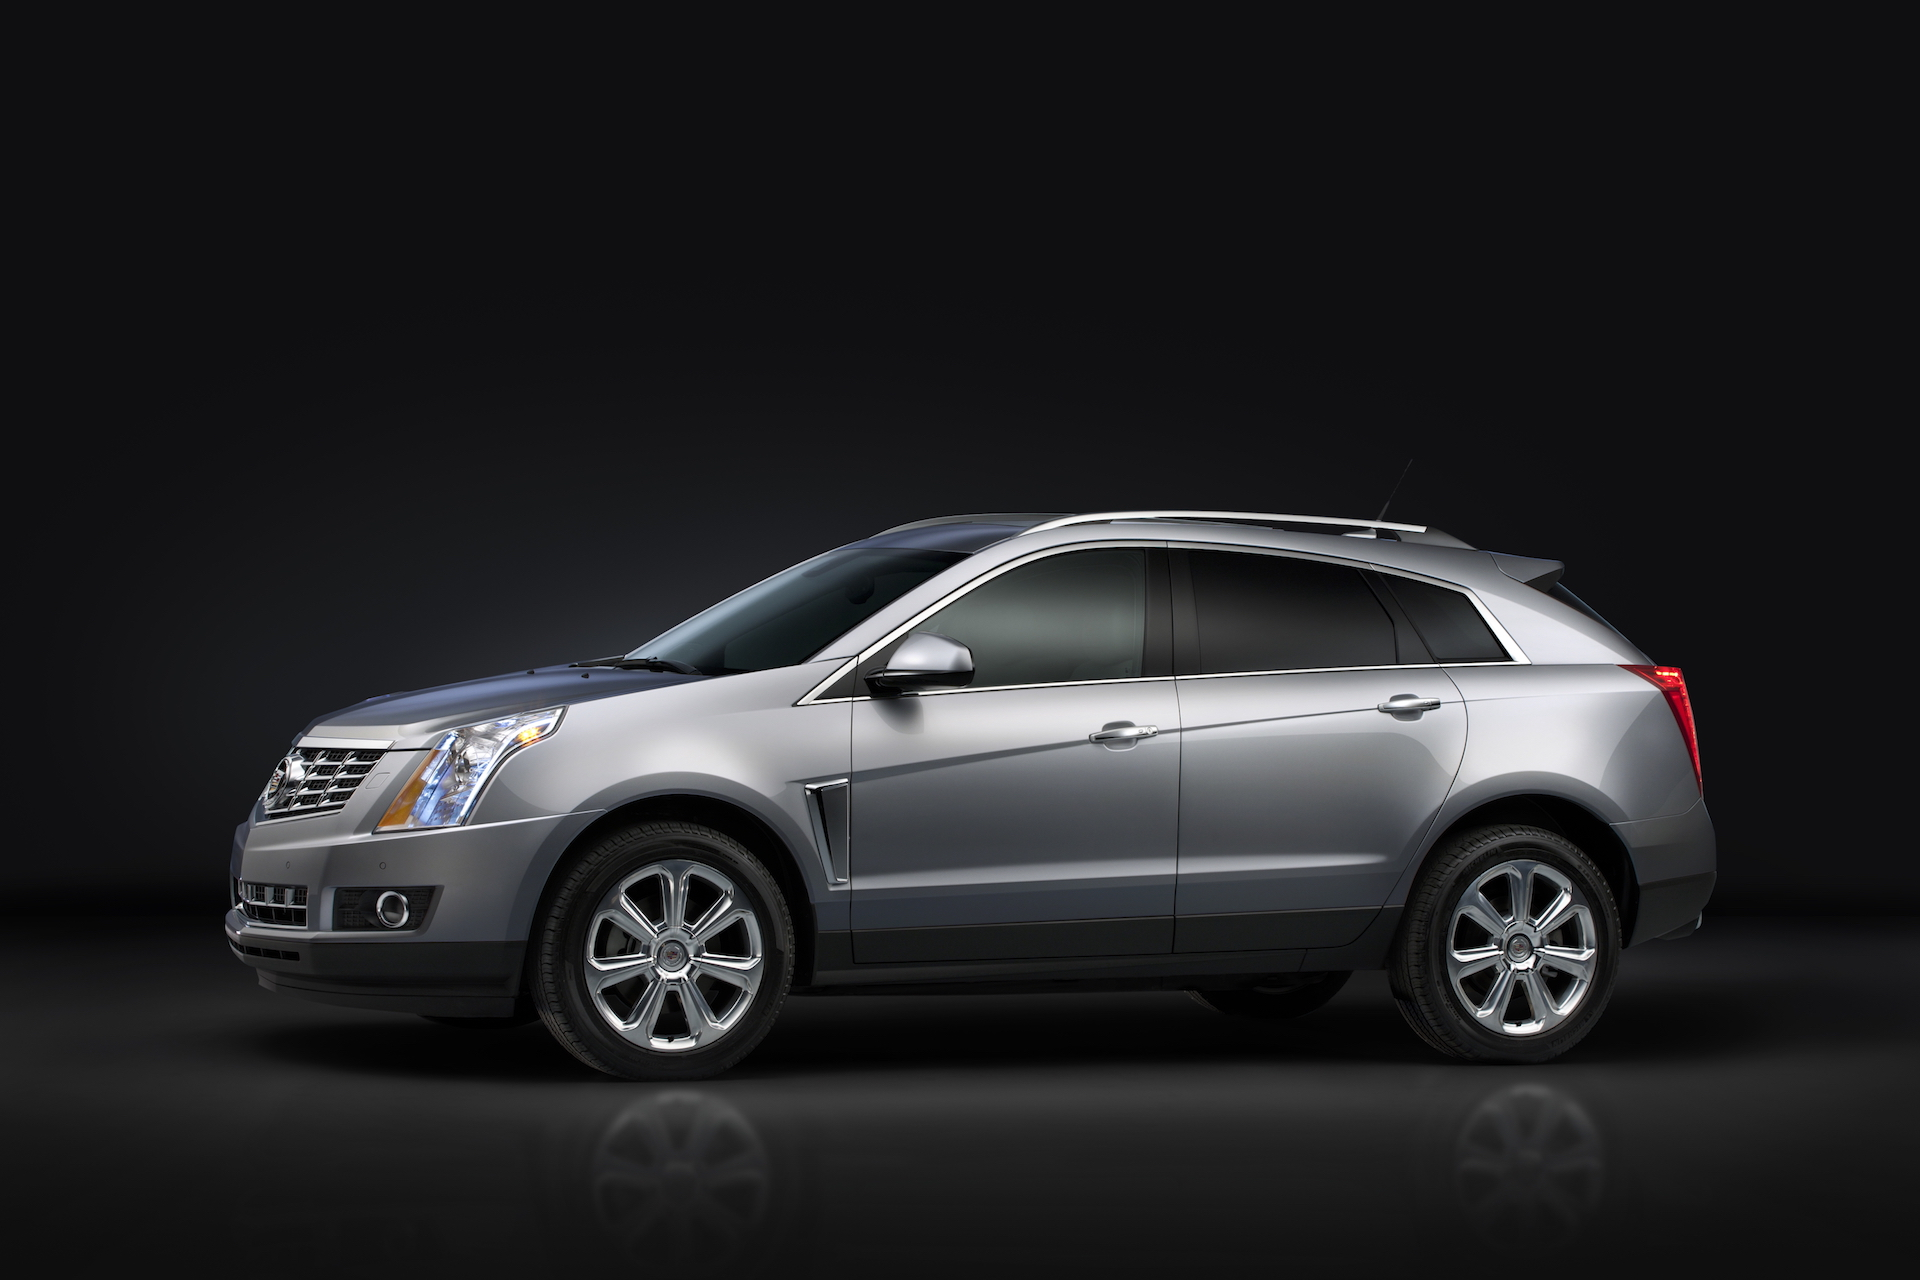 2016 Cadillac SRX Review, Ratings, Specs, Prices, and Photos - The Car Connection